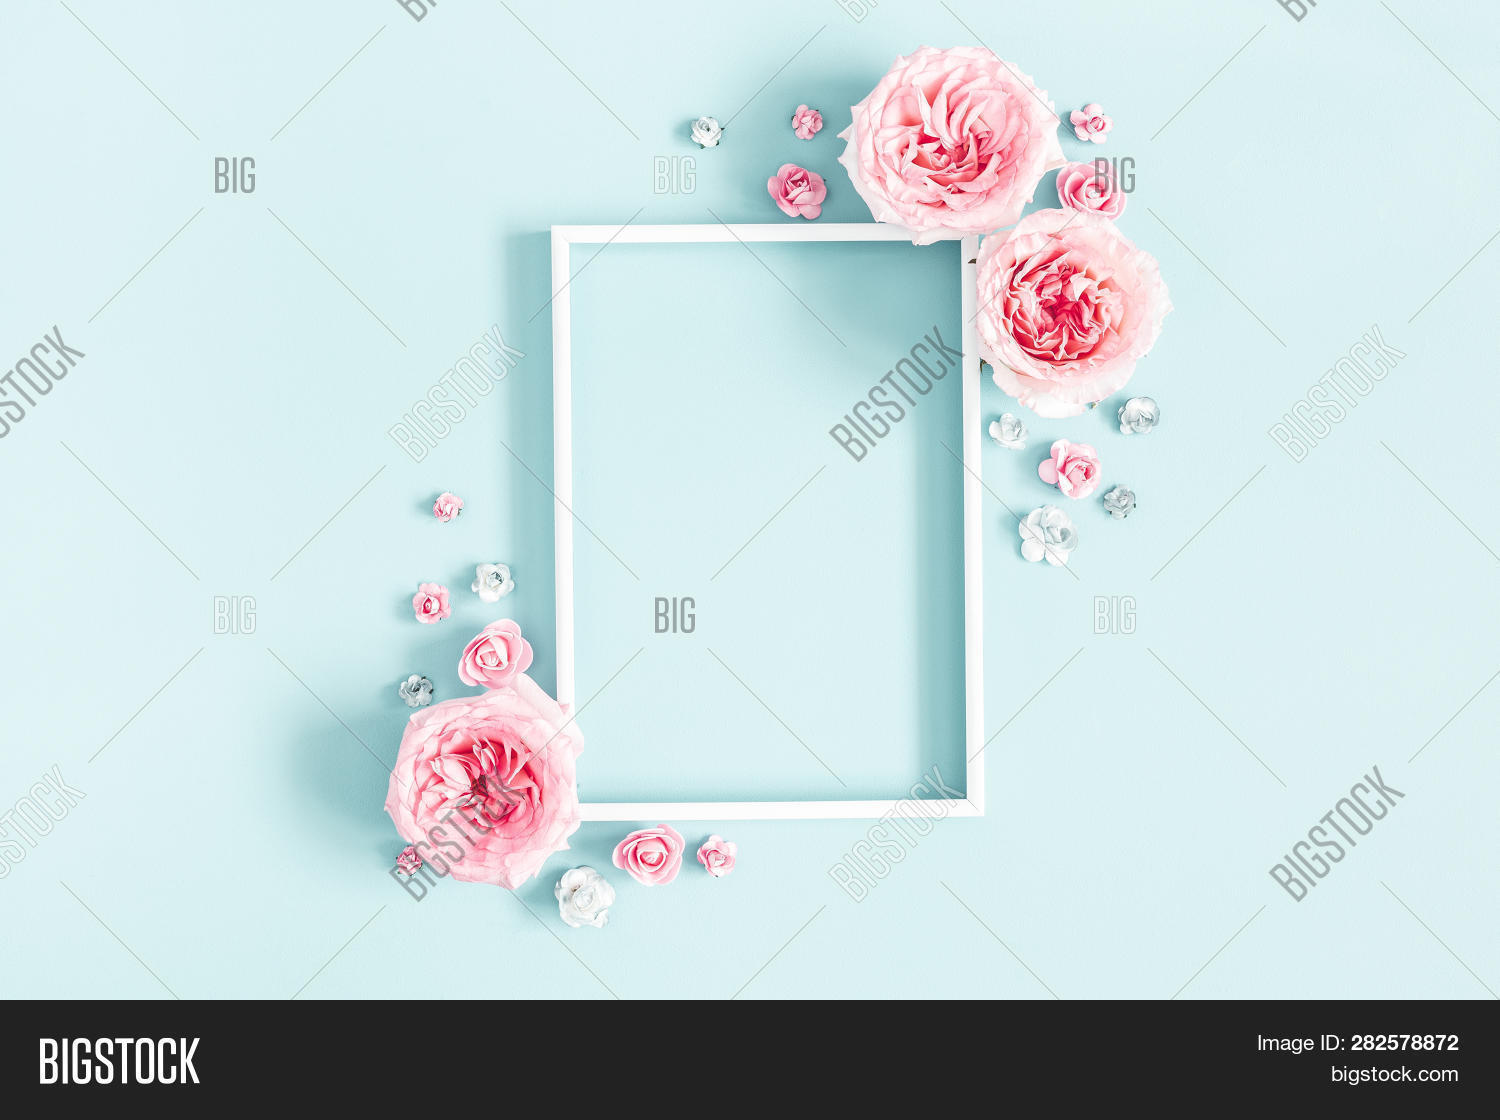 above,art,background,beauty,blue,bud,card,color,composition,concept,creative,day,decor,decoration,design,desk,fashion,flat,flatlay,floral,flower,frame,gift,hipster,holiday,invitation,lay,layout,minimal,minimalist,mint,mockup,mother,overhead,pastel,pattern,photo,picture,pink,present,rose,spring,summer,table,top,valentine,view,wedding,woman